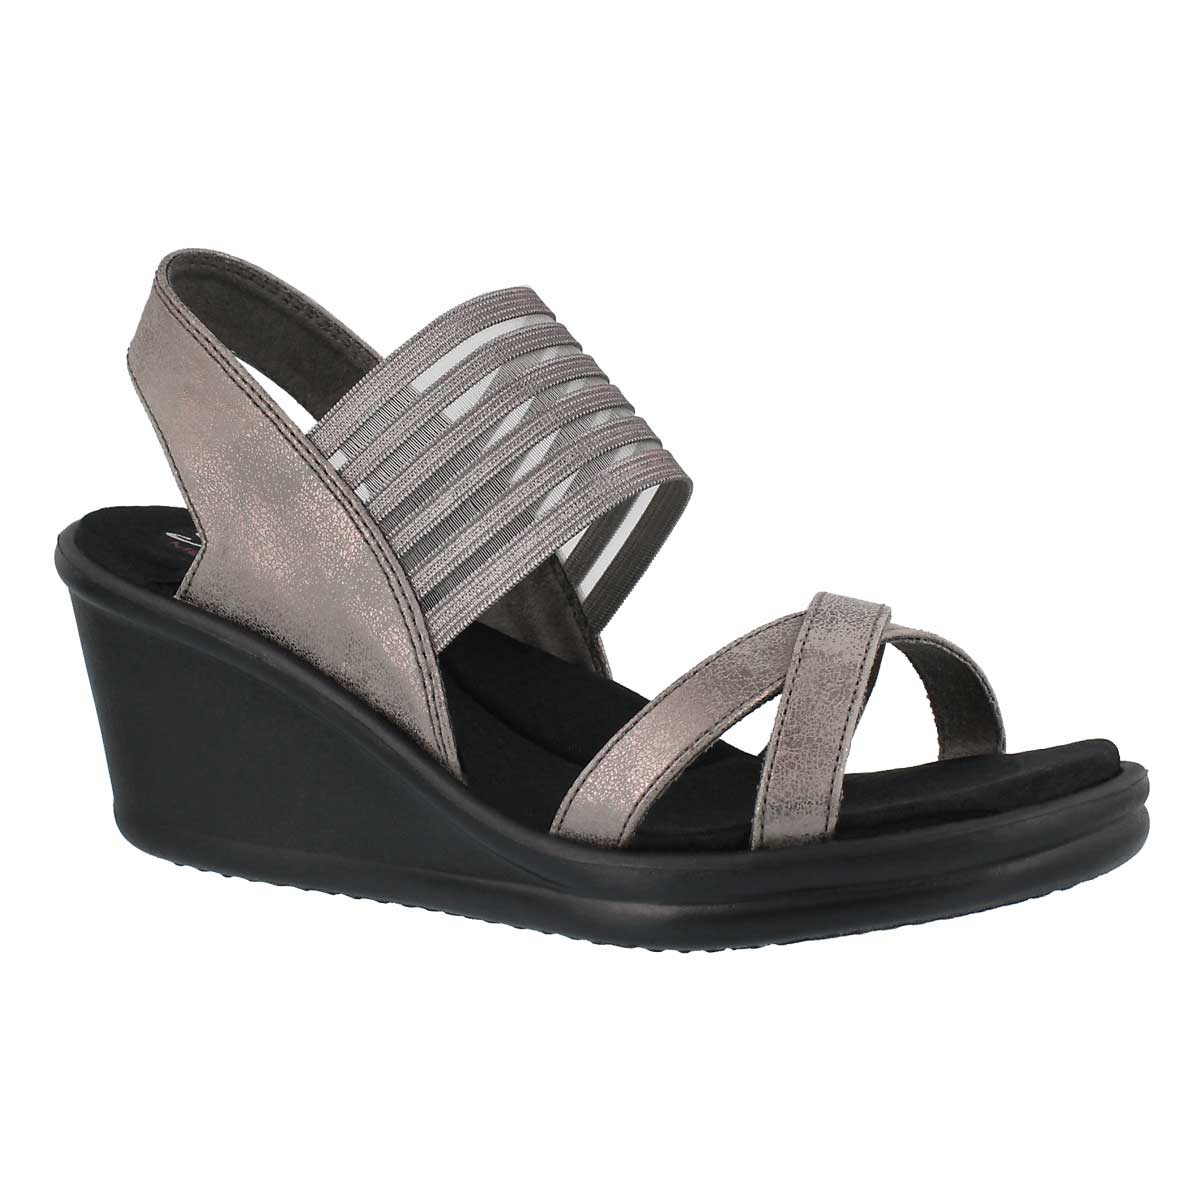 Women's RUMBLERS GLAM SOCIETY pwtr wdg sandals